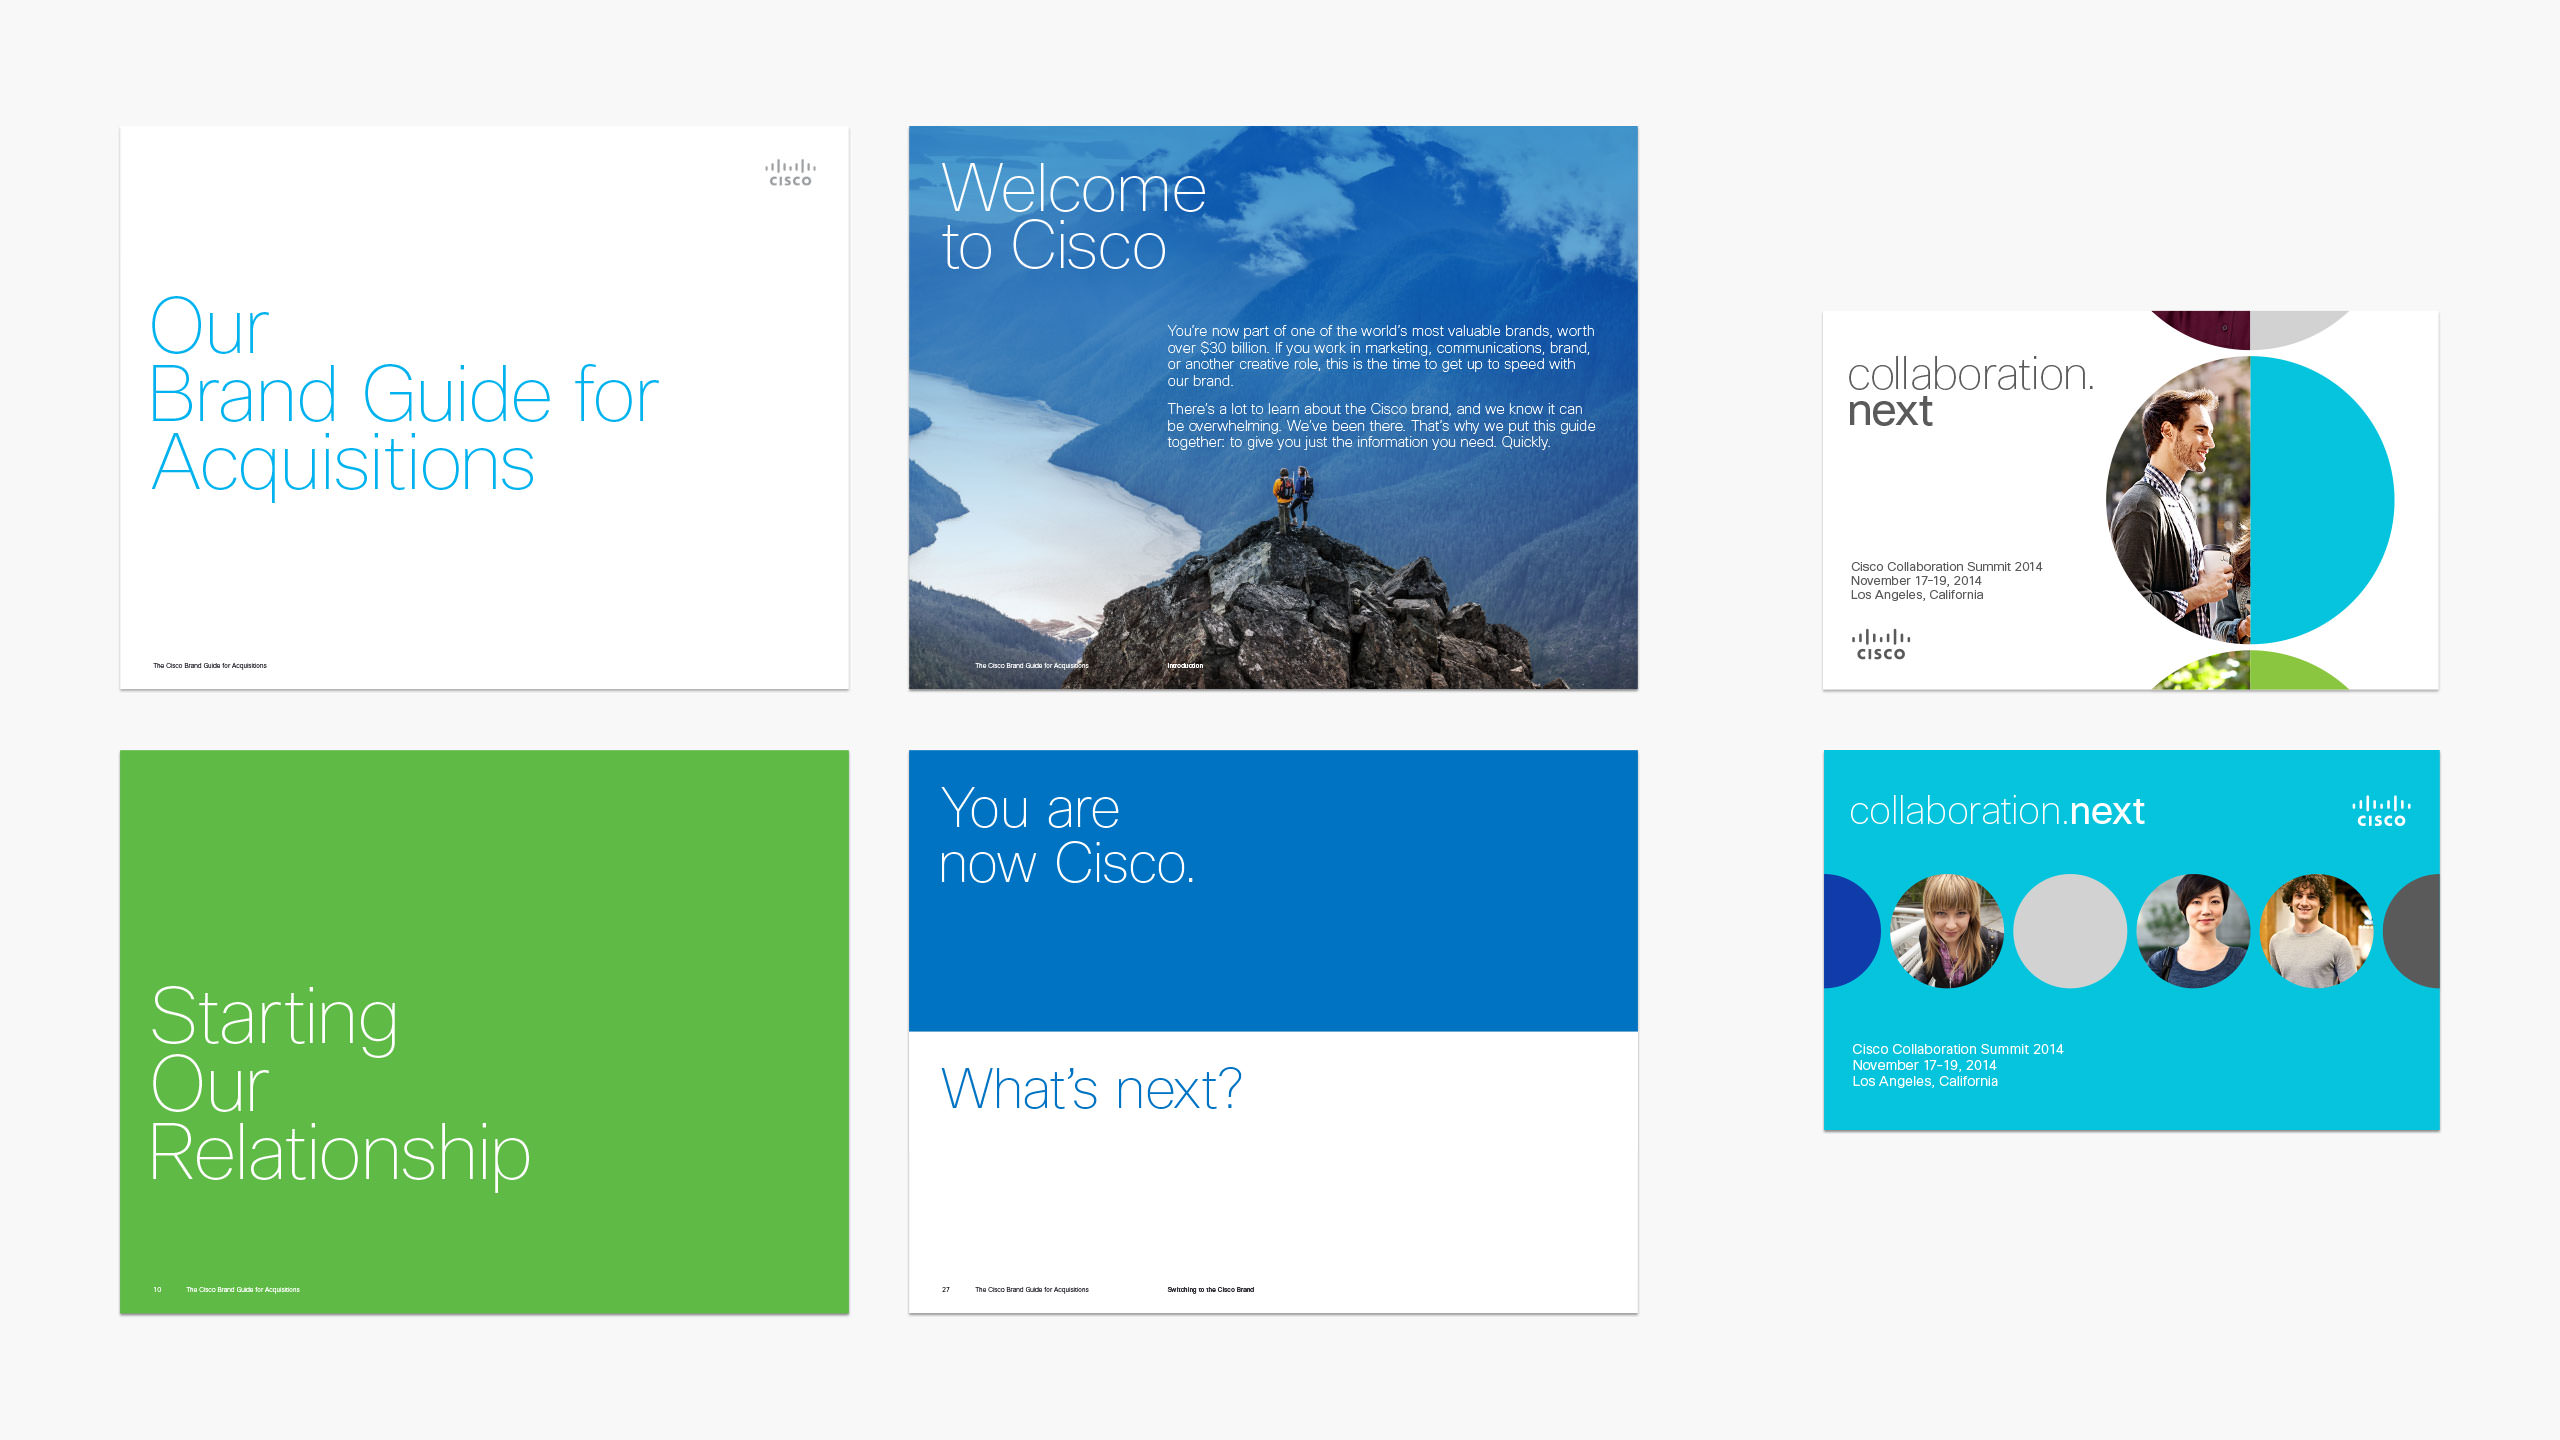 pages from Cisco Brand Guide for Acquisitions and Collaboration Summit